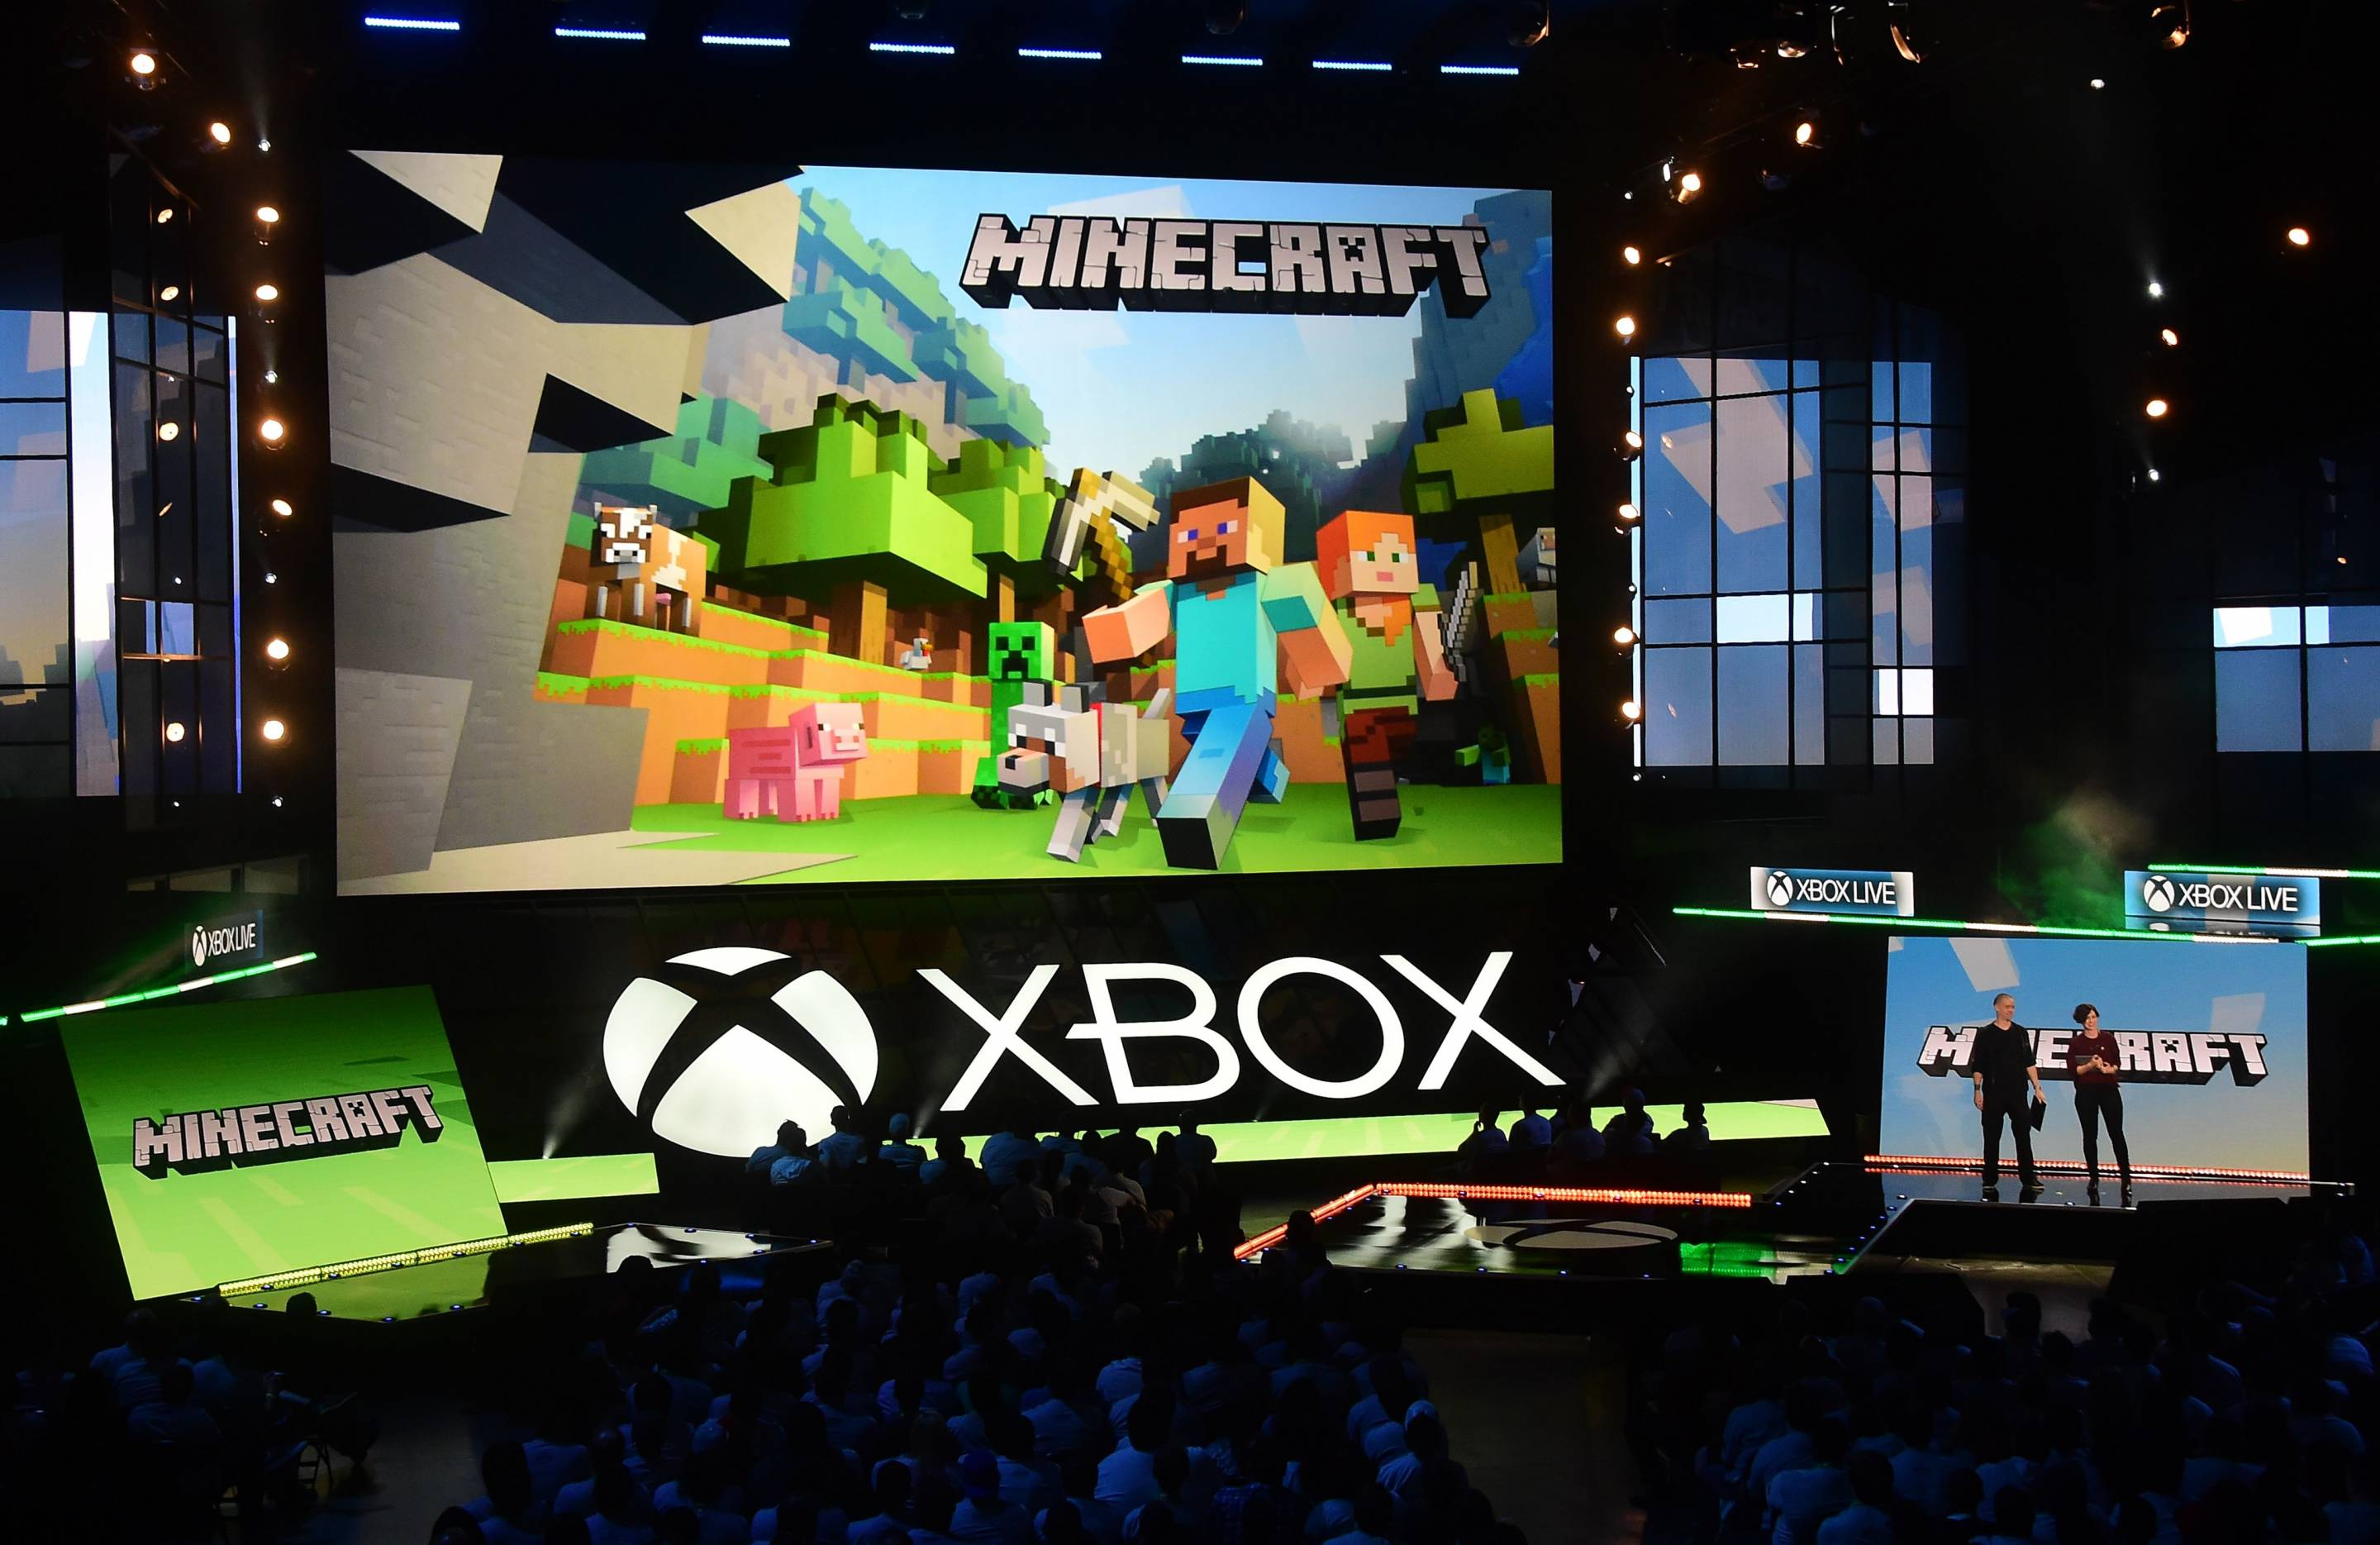 Microsoft Holds Its Xbox 2016 Briefing During Annual E3 Gaming Conference